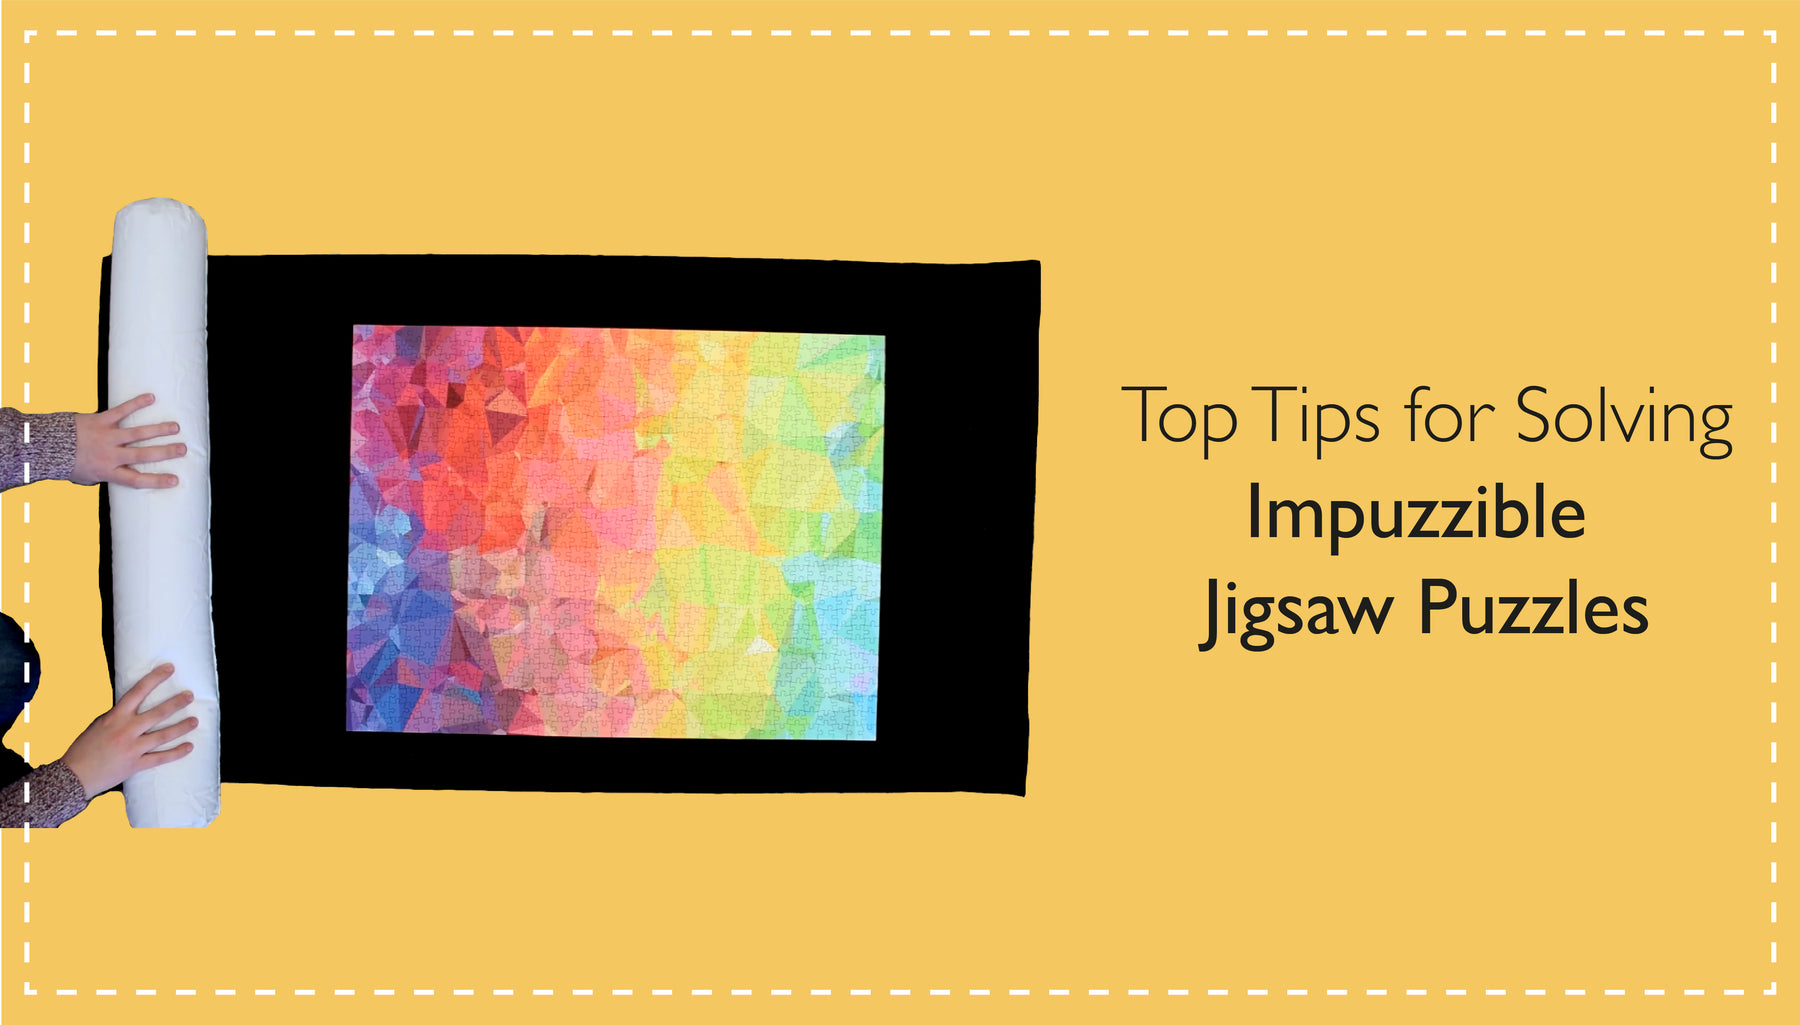 Top Tips for Solving Impuzzible Jigsaw Puzzles